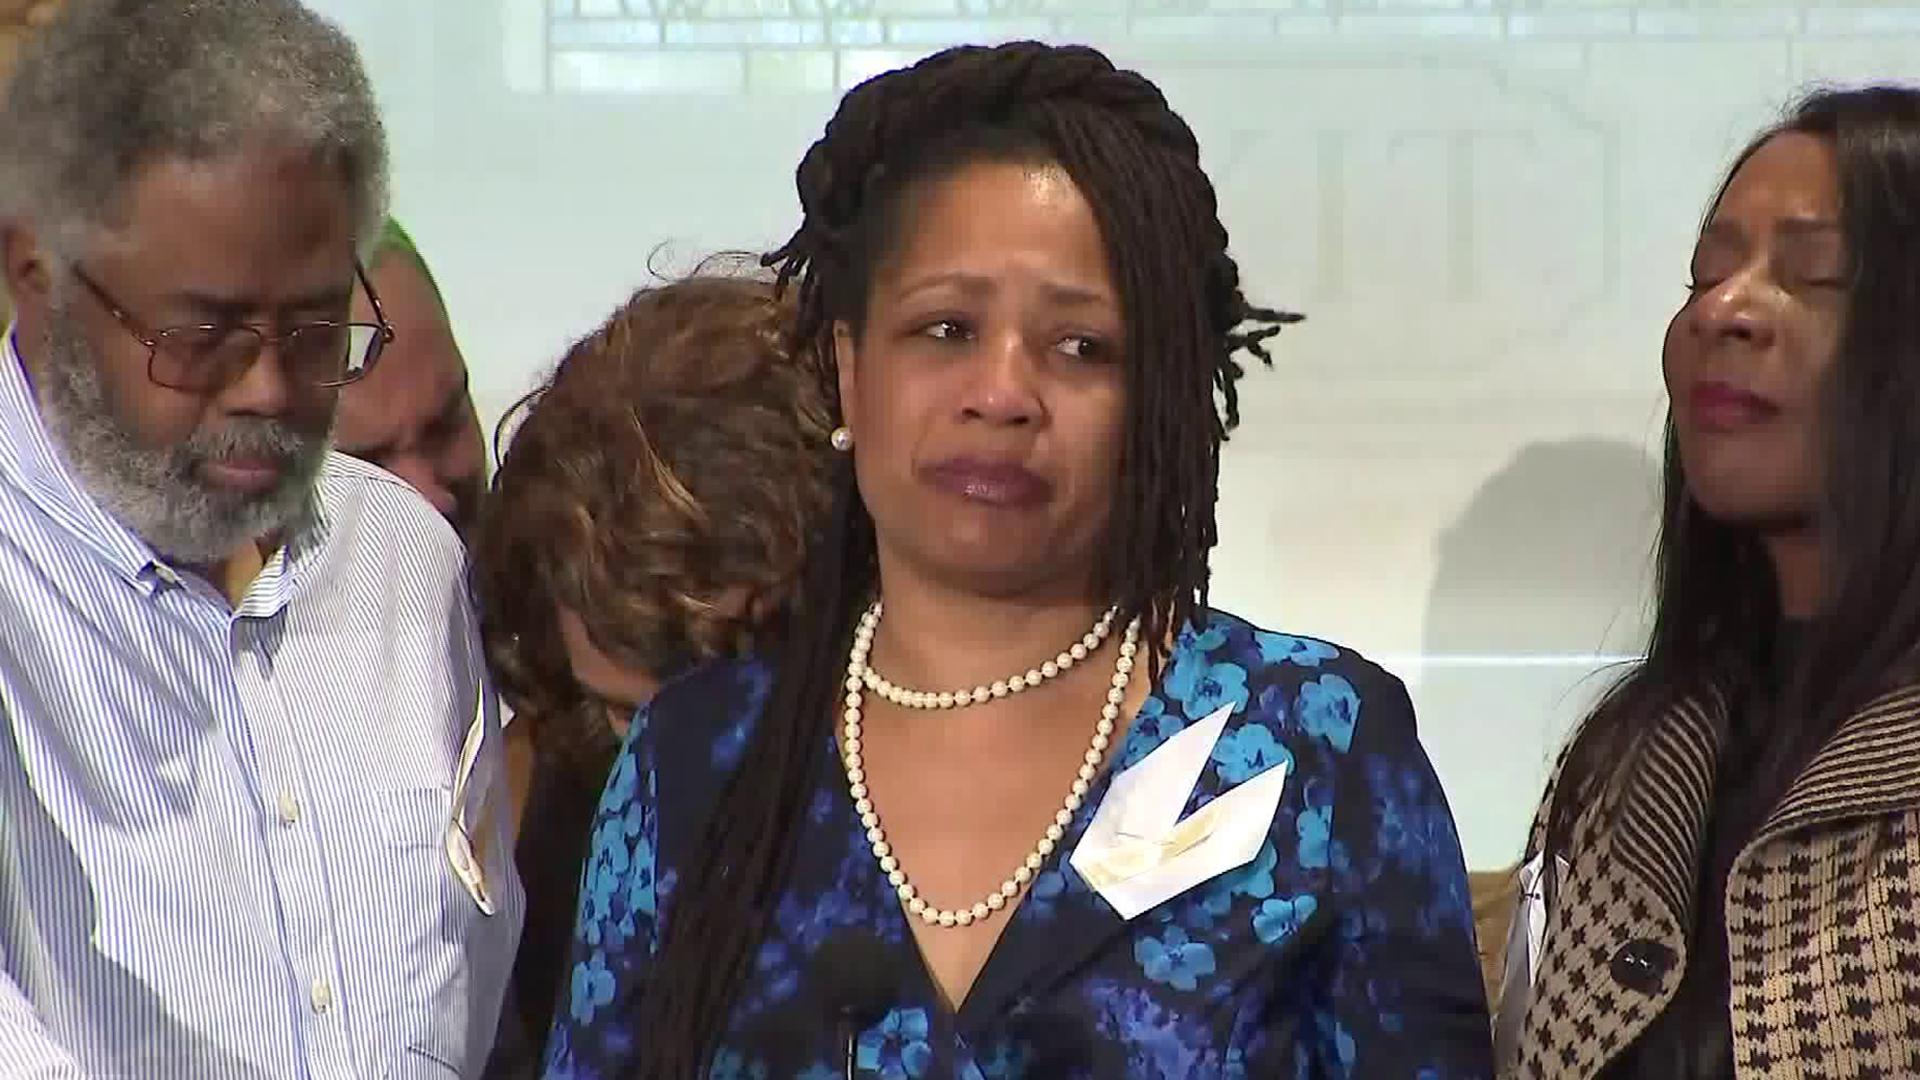 Lynette McElhaney speaks at a news conference at the University of Southern California on March 12, 2019, days after the fatal shooting of her son, Victor McElhaney, at a nearby strip mall. (Credit: KTLA)